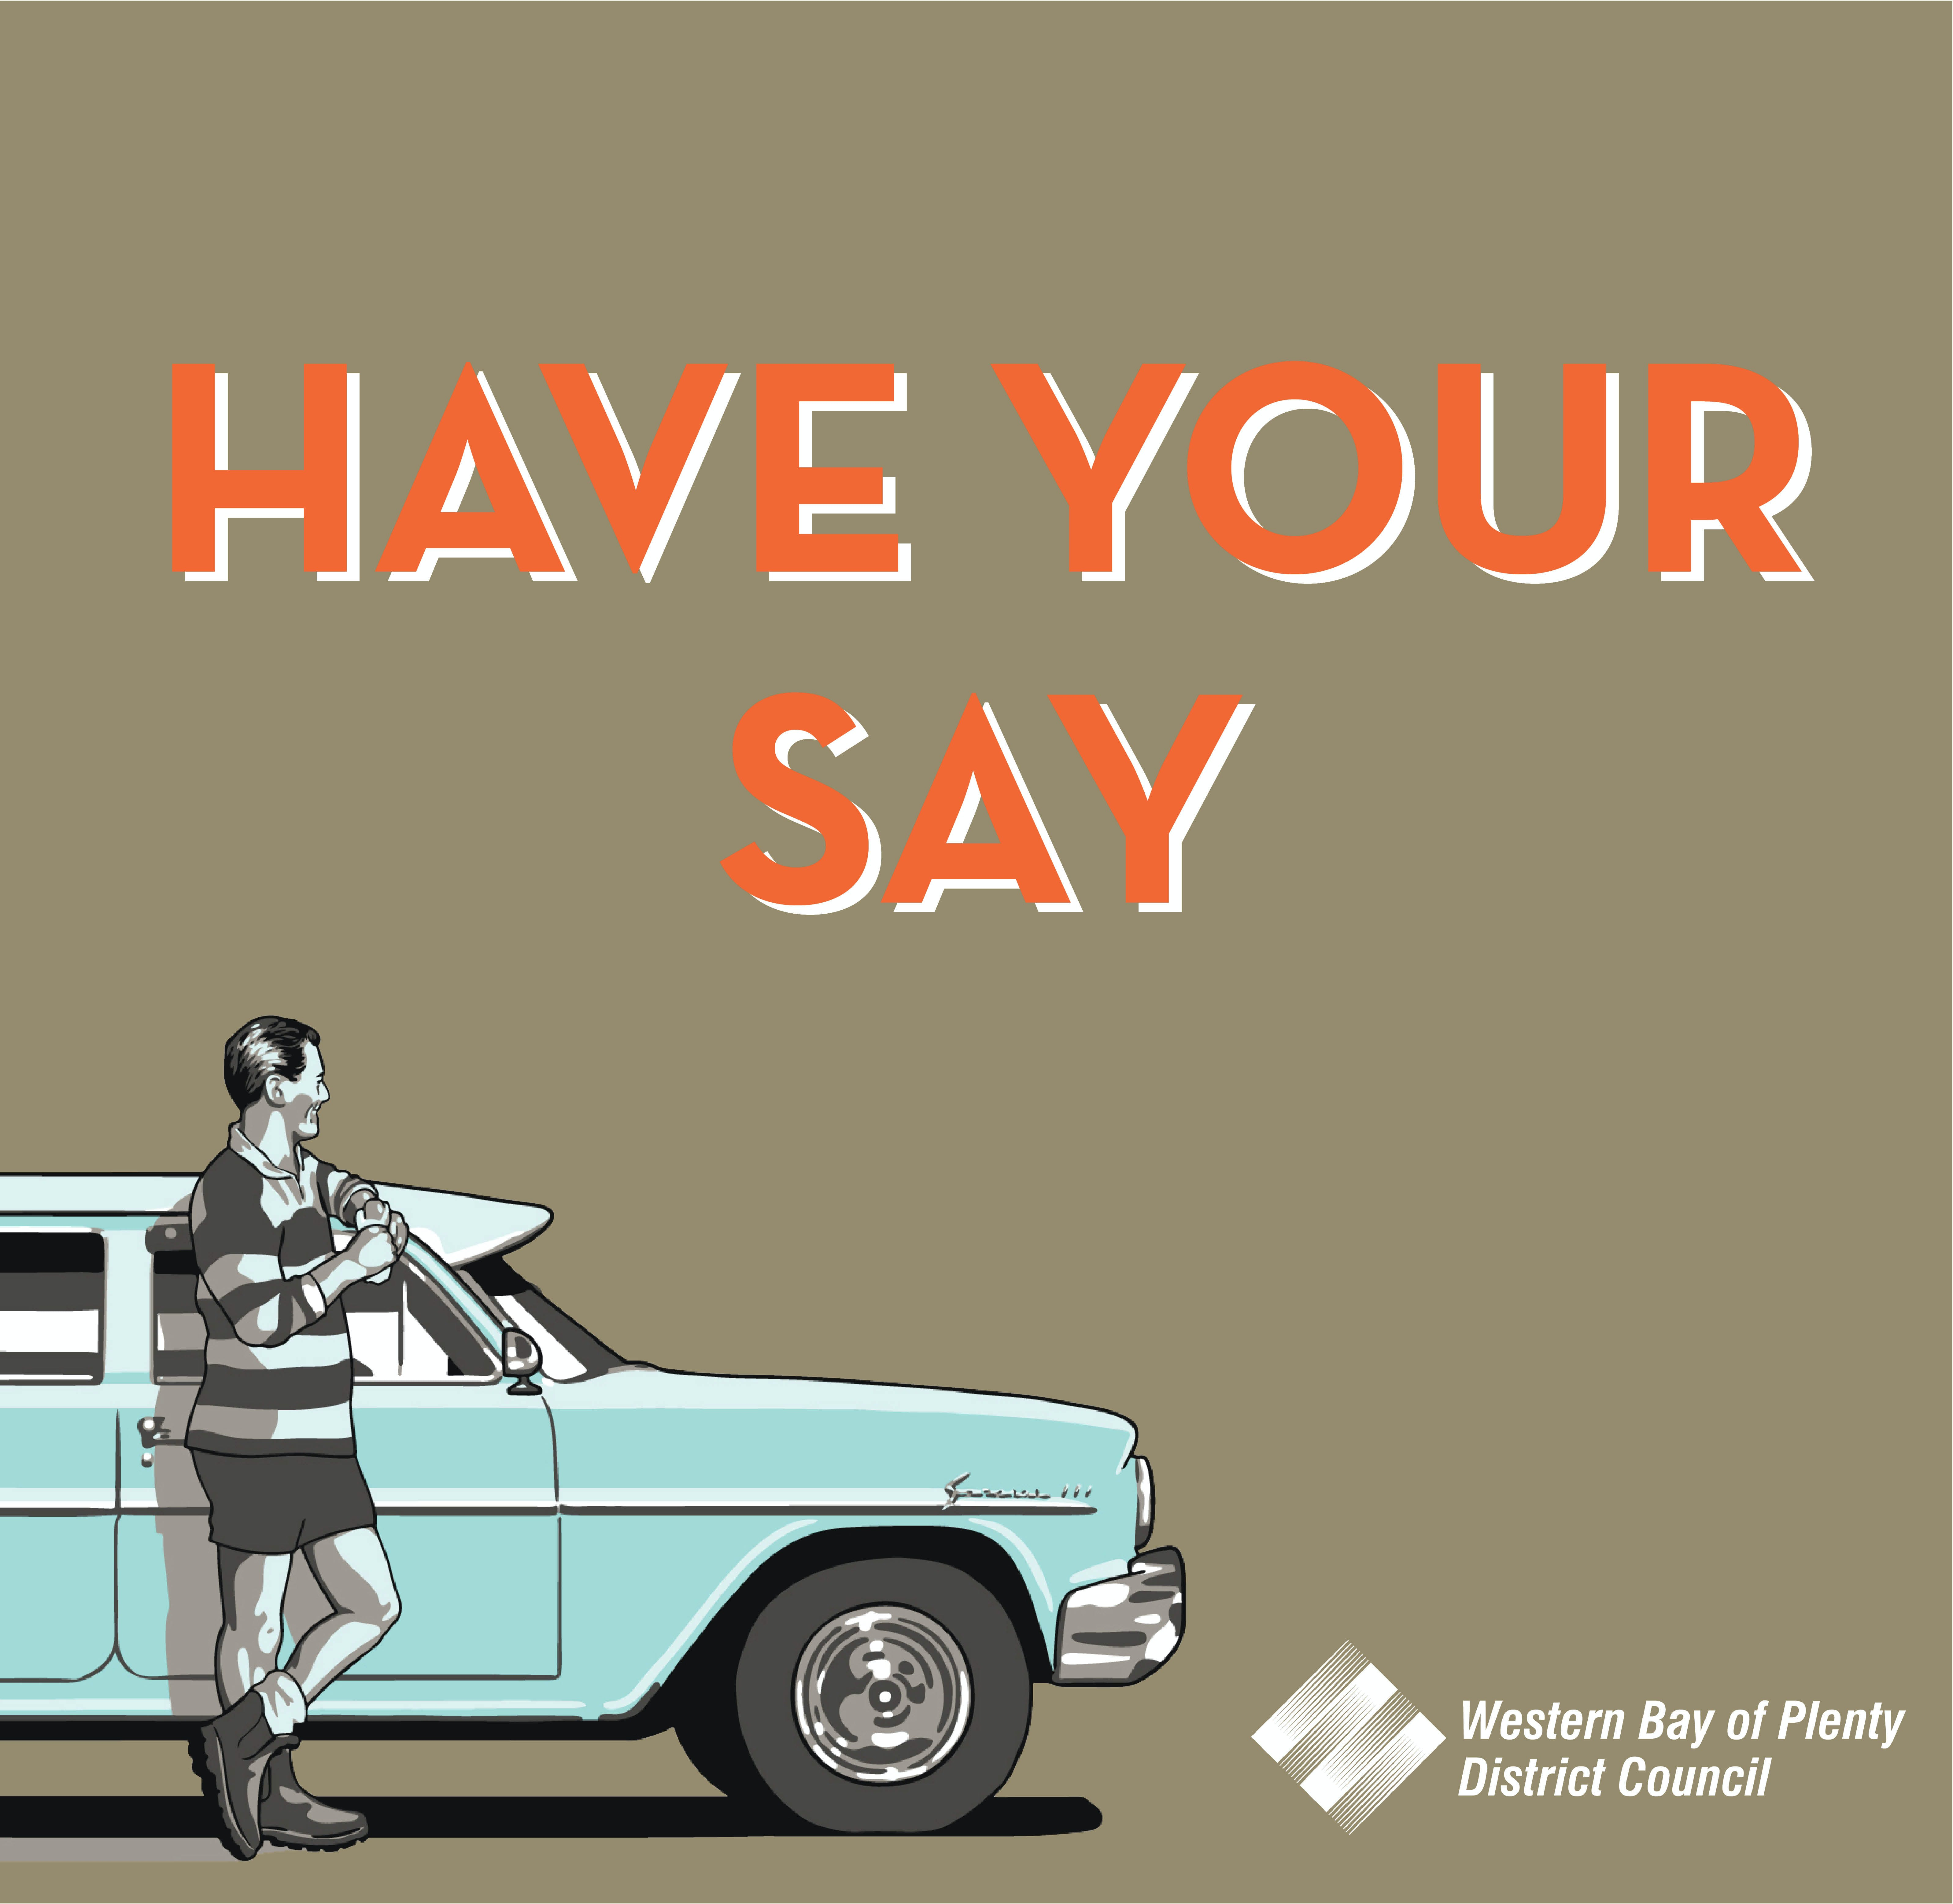 New have your say banner   3 with text   large